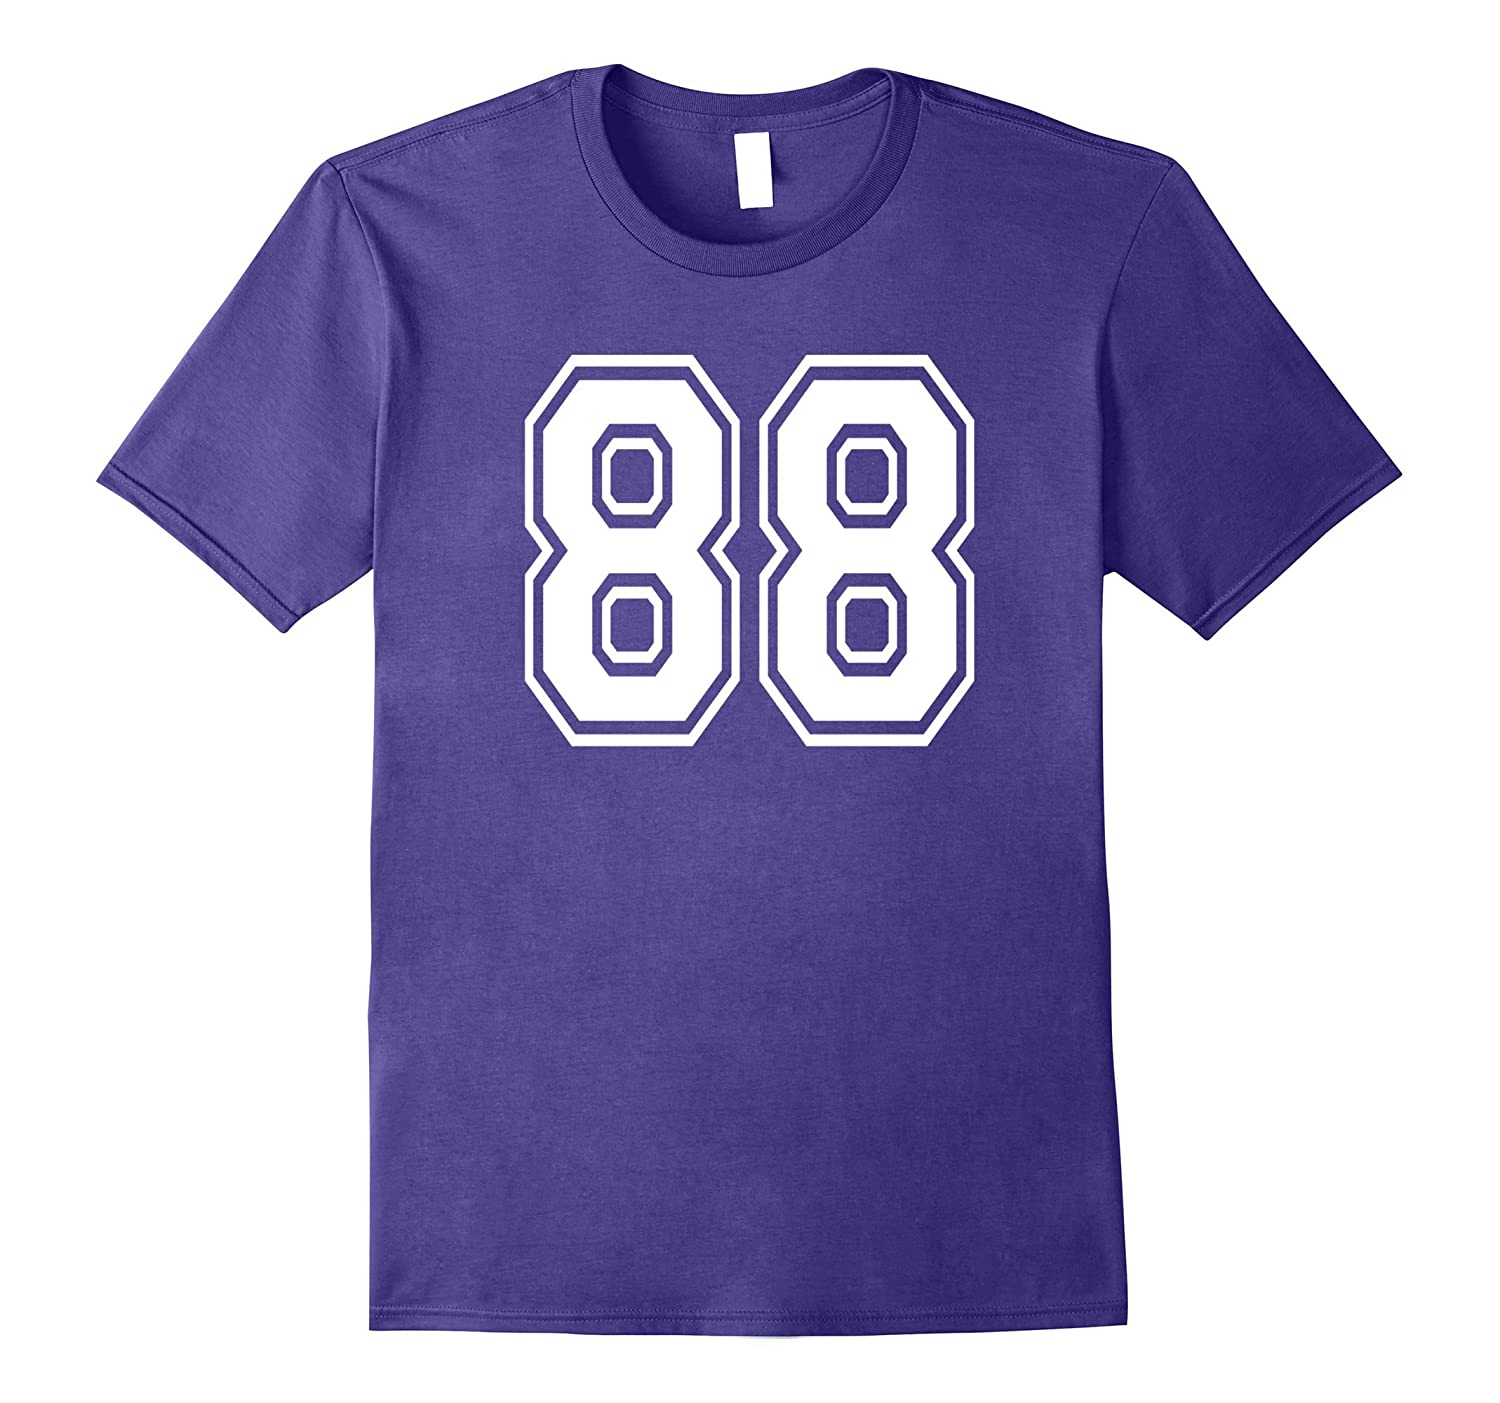 88 Sports Team School Numbers on Front T-Shirt Jersey-Vaci